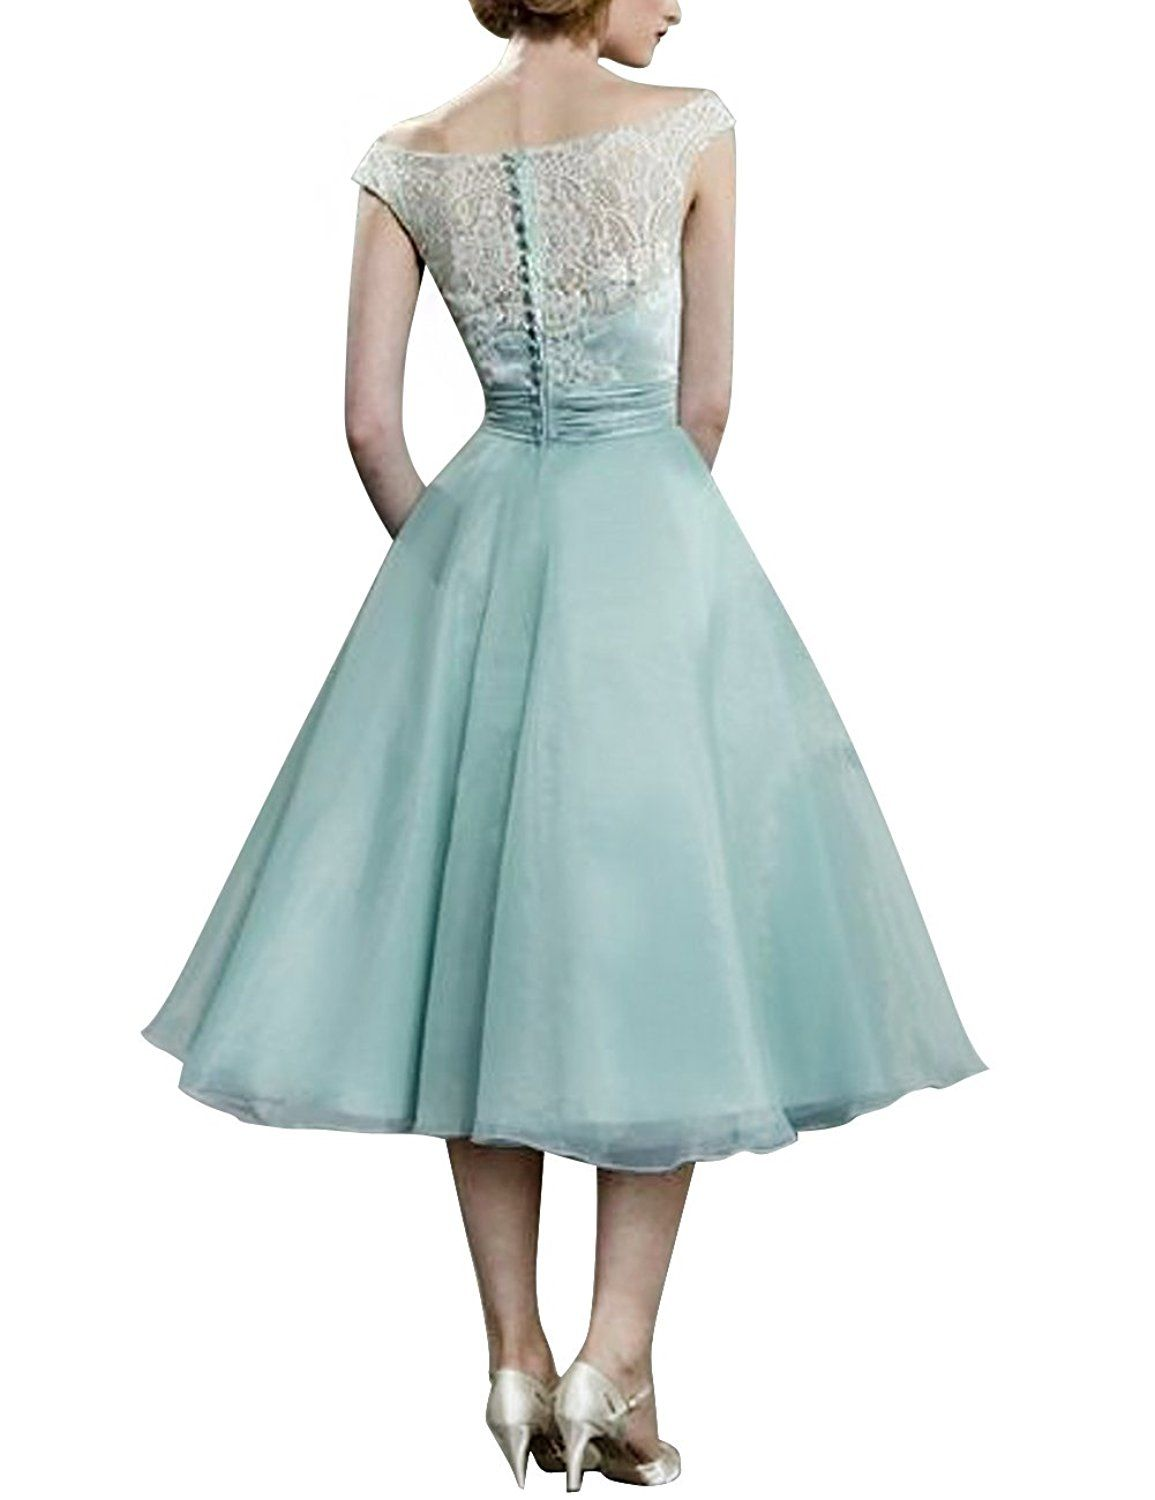 Funky Wedding Dresses On Amazon Ensign - Womens Dresses & Gowns ...